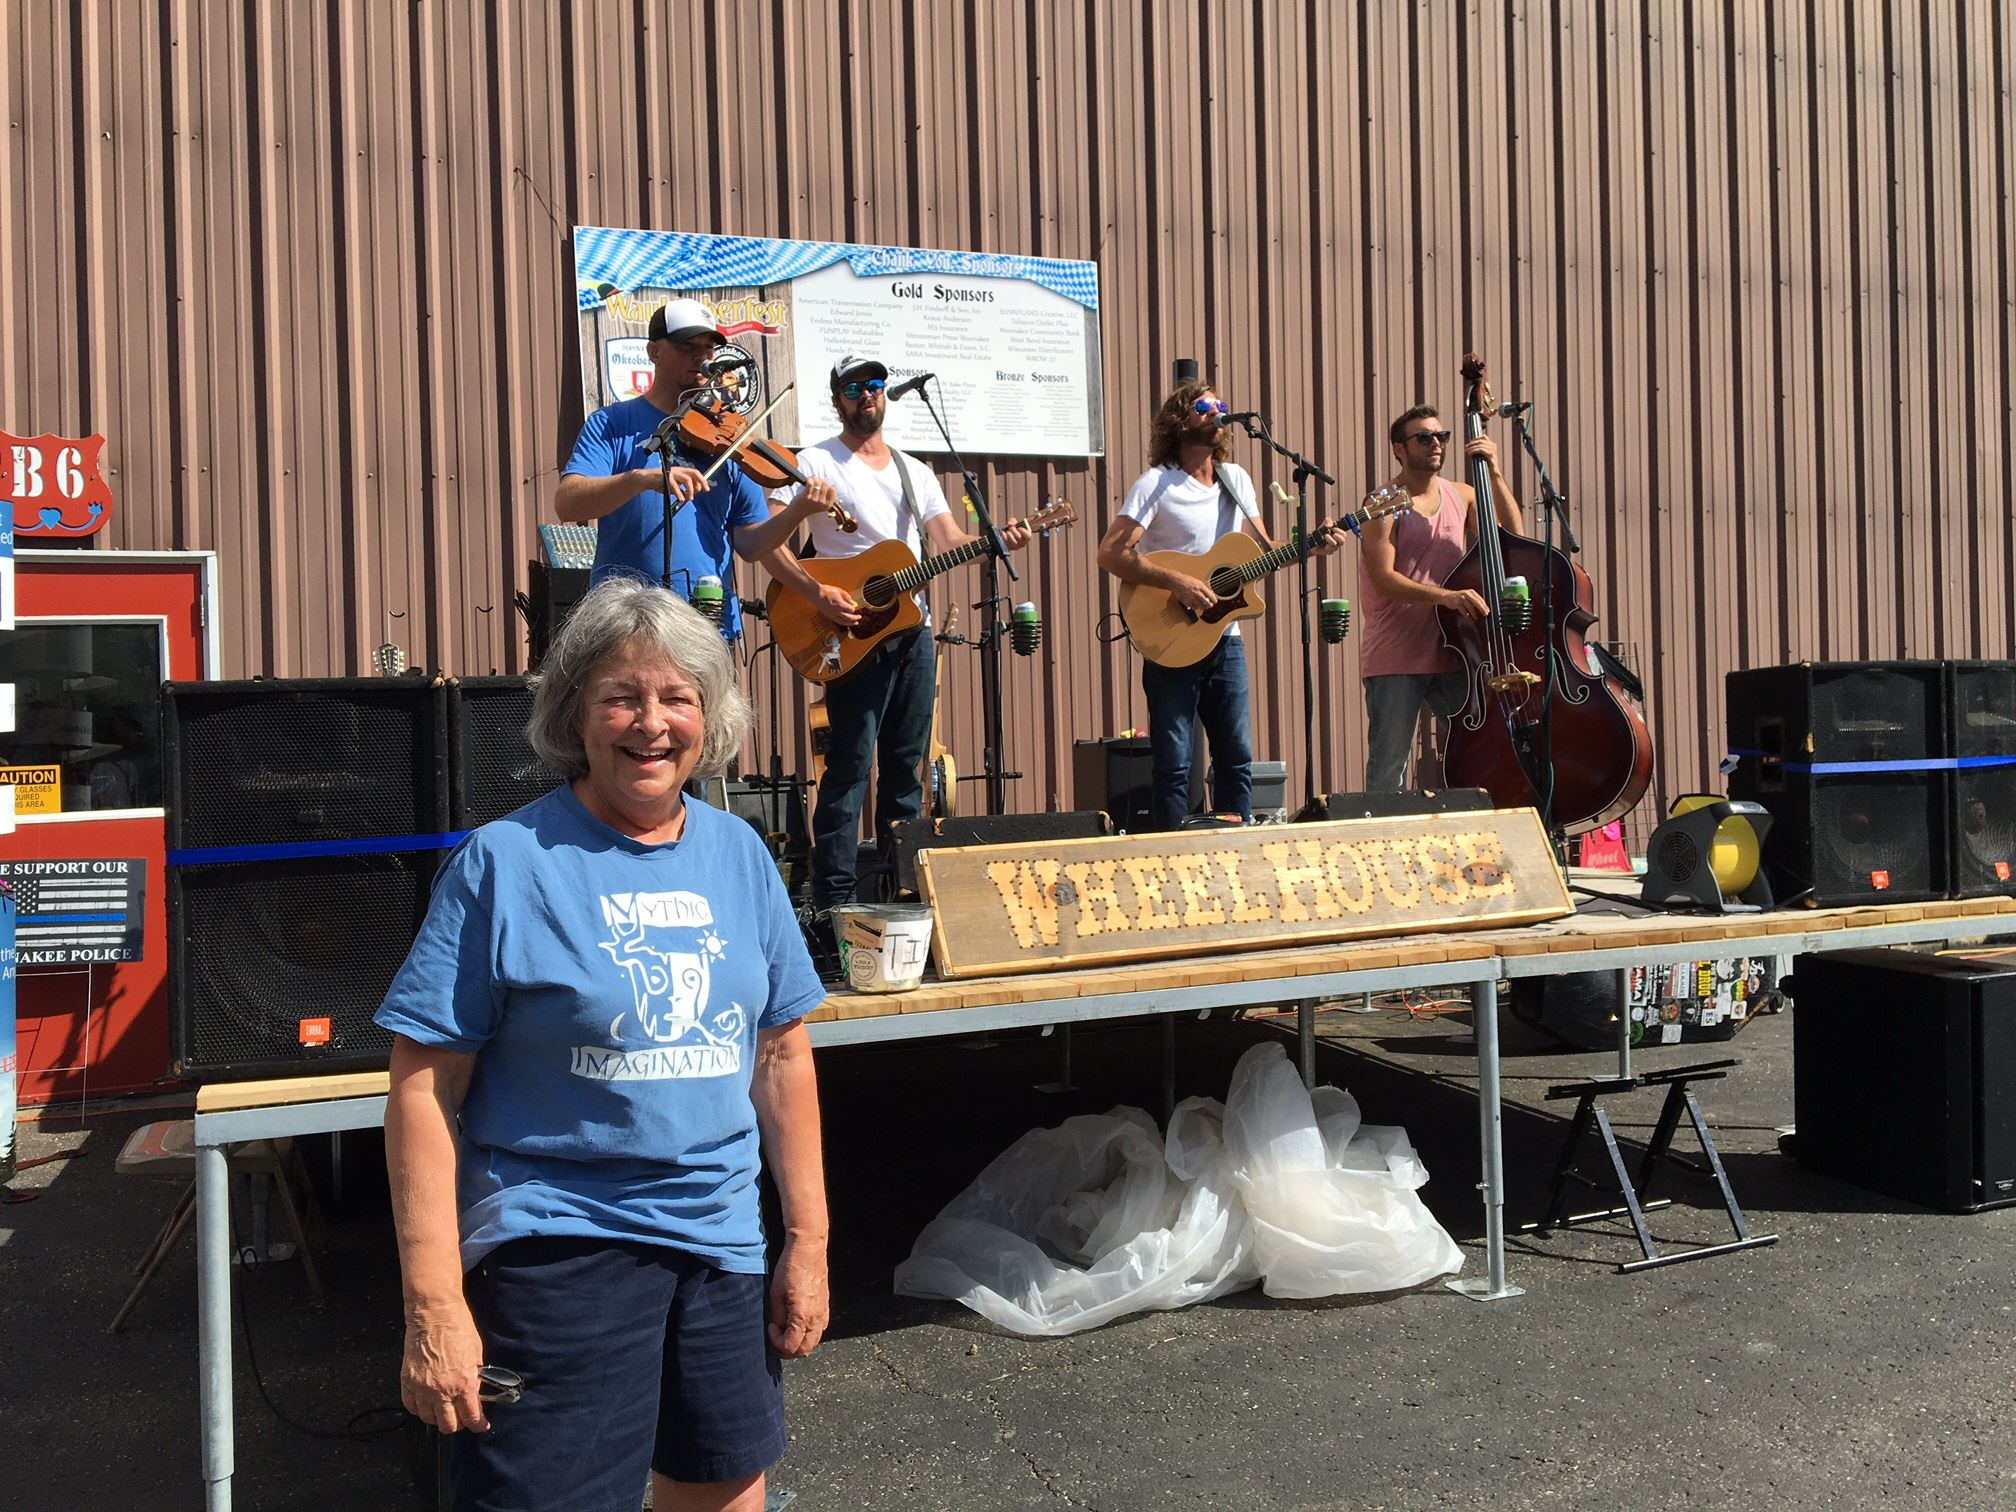 47 Dressed in blue in front of Bluegrass band